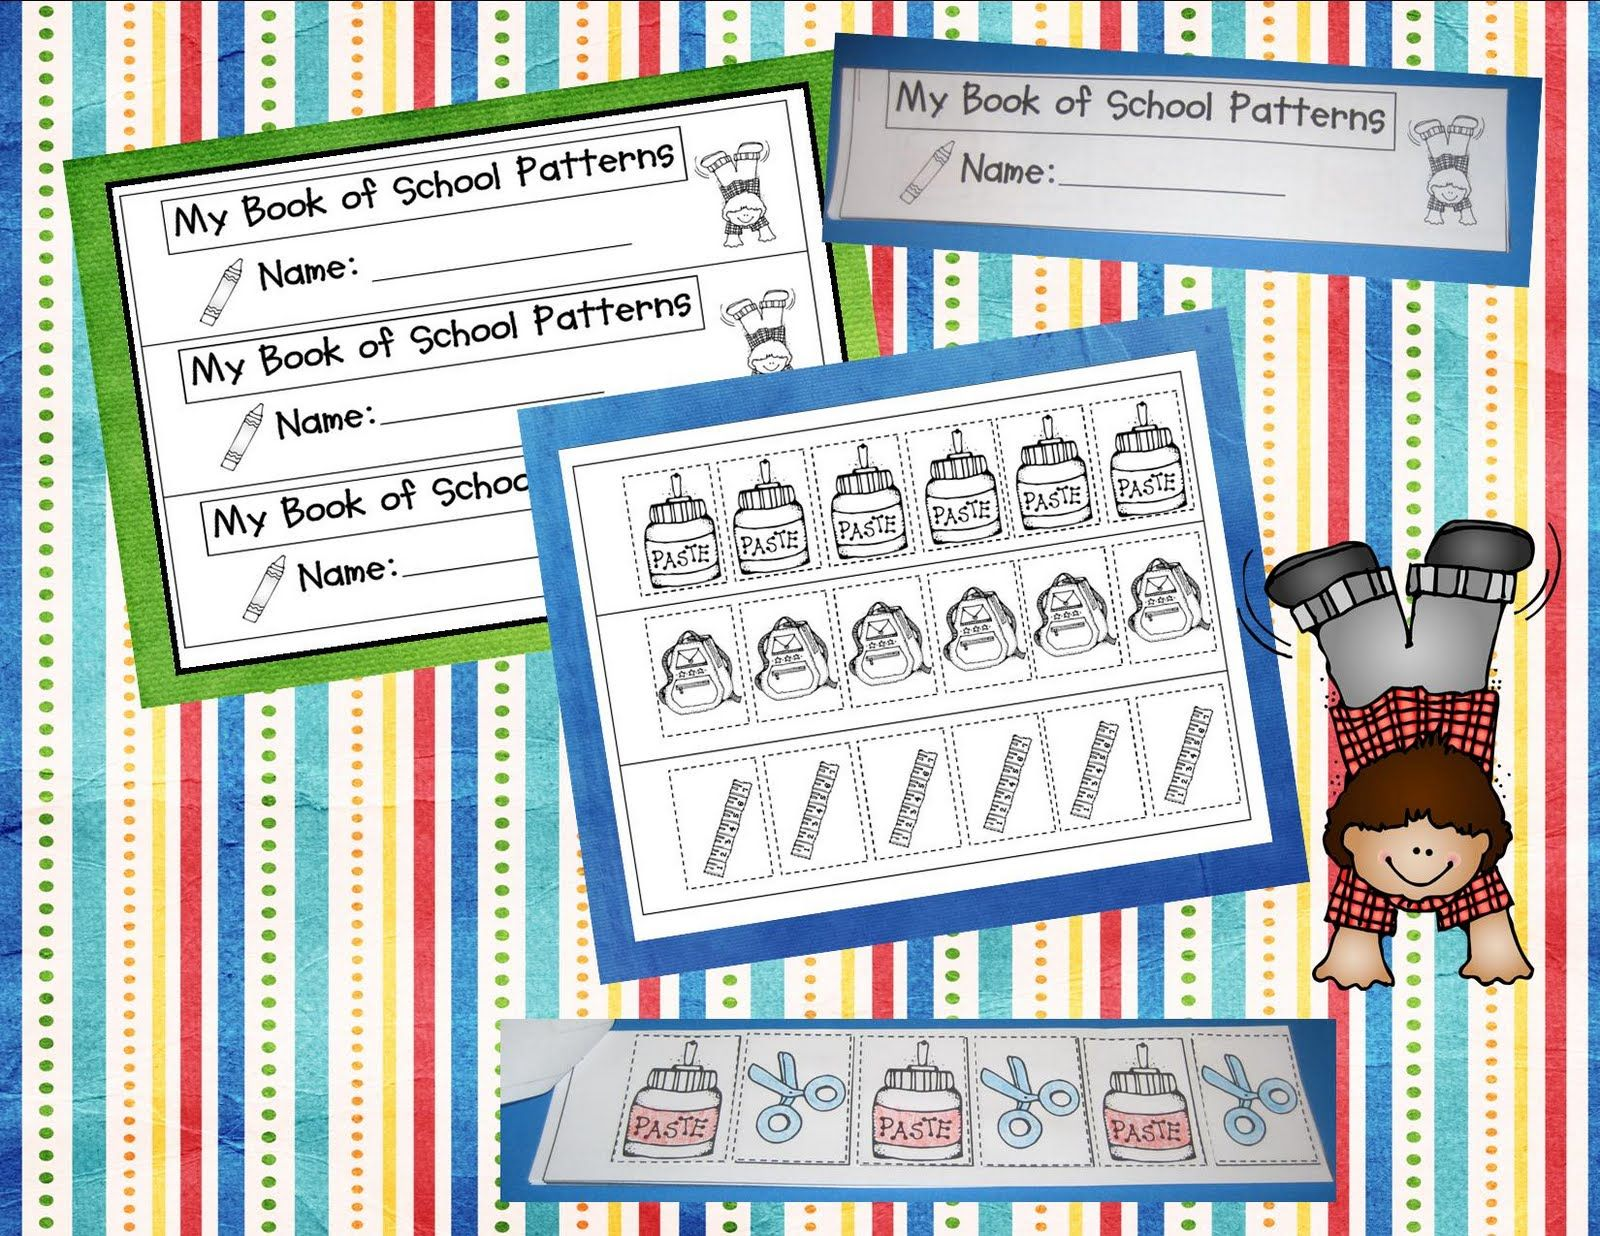 Here S A Booklet For Students To Create A Series Of School Themed Pattern Strips